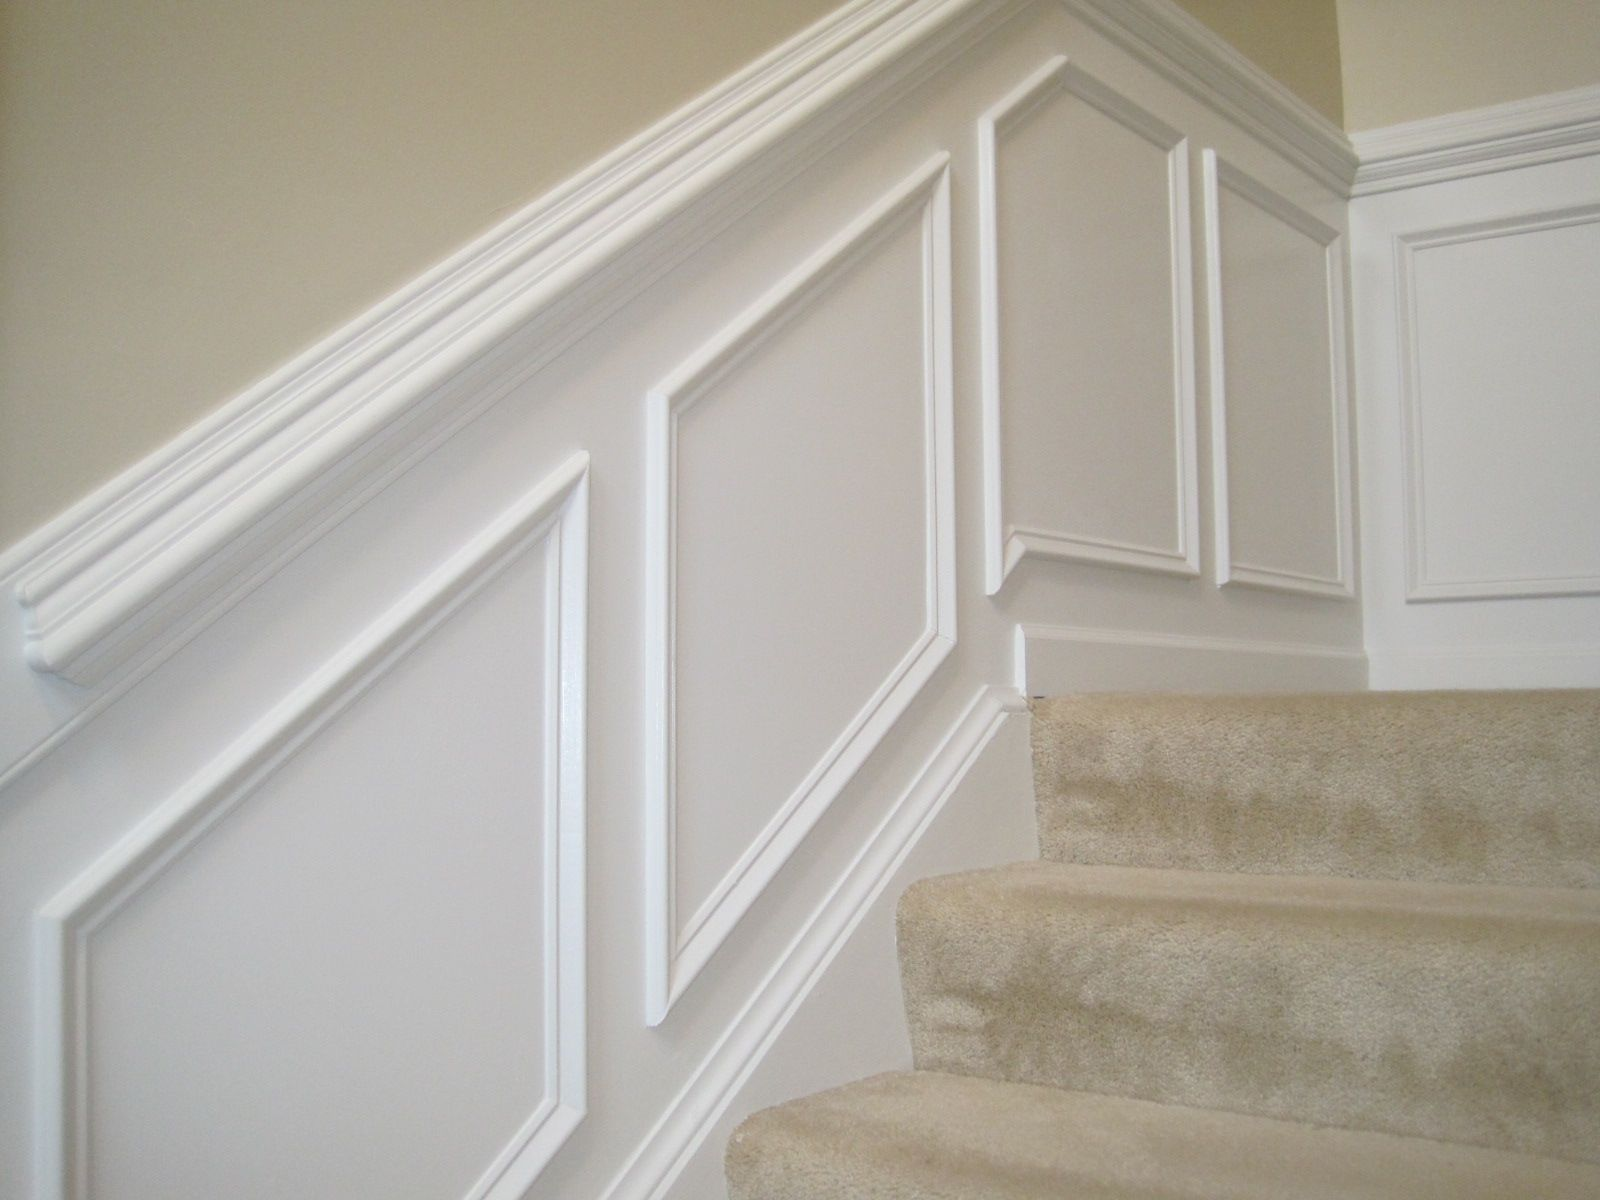 Best Chair Rail Molding Ideas To Beef Up The Chair Rail We 400 x 300